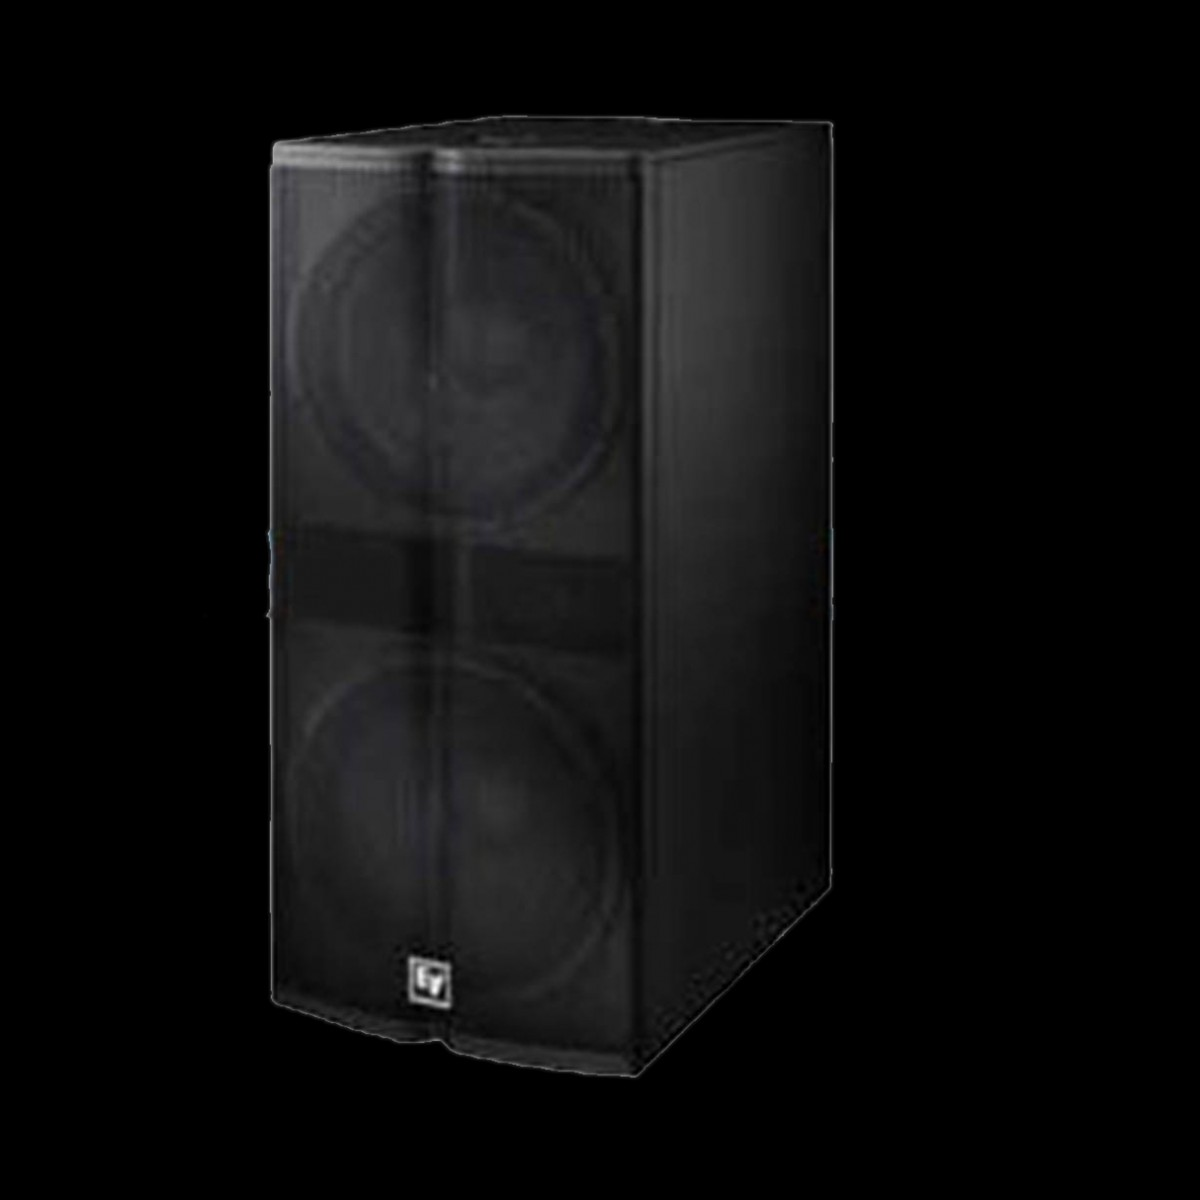 electrovoice tourx tx2181 grille boven luidsprekerhoes strongline